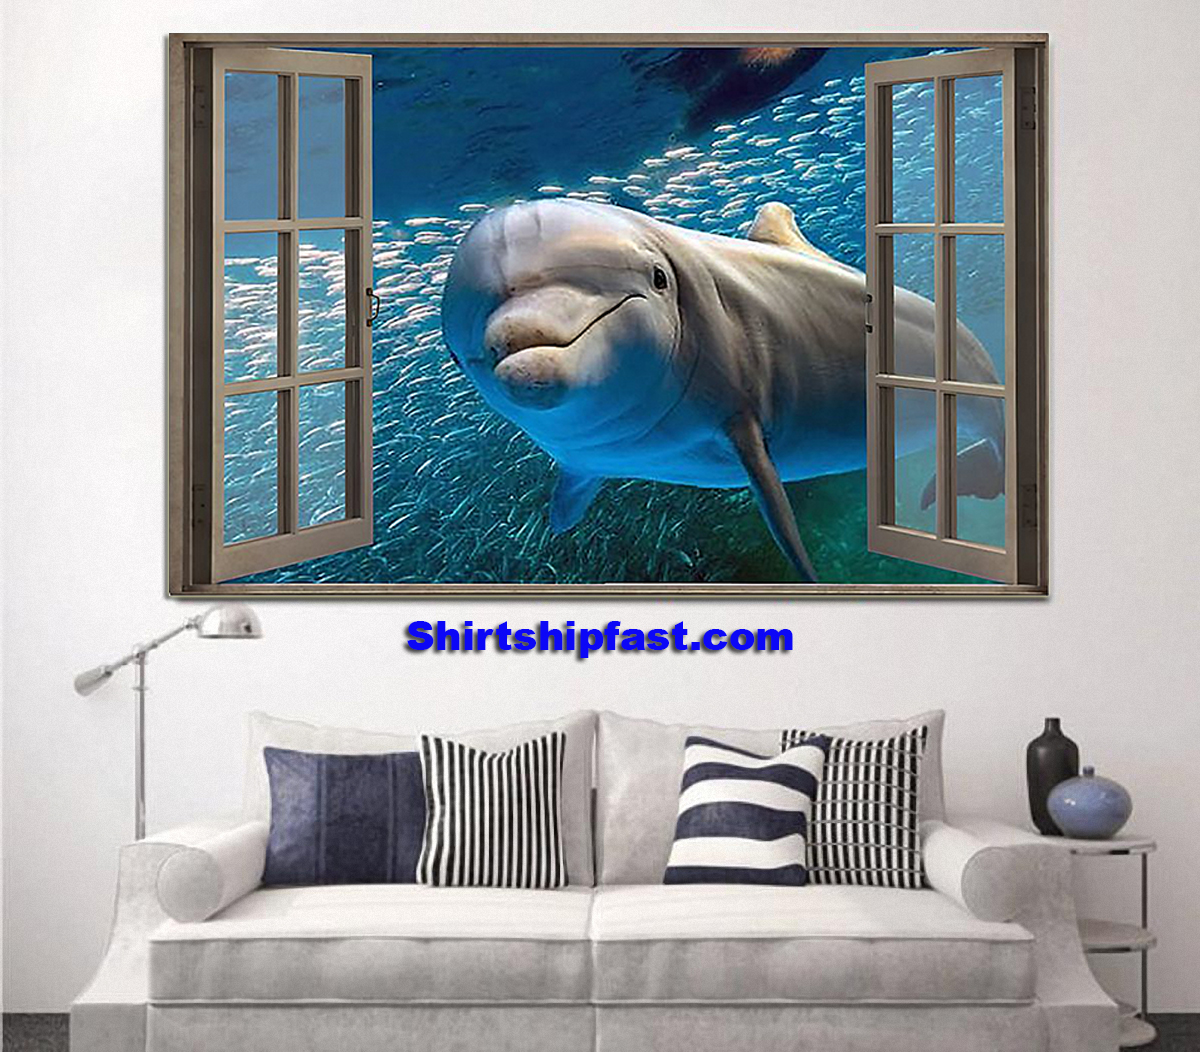 Dolphin window view poster